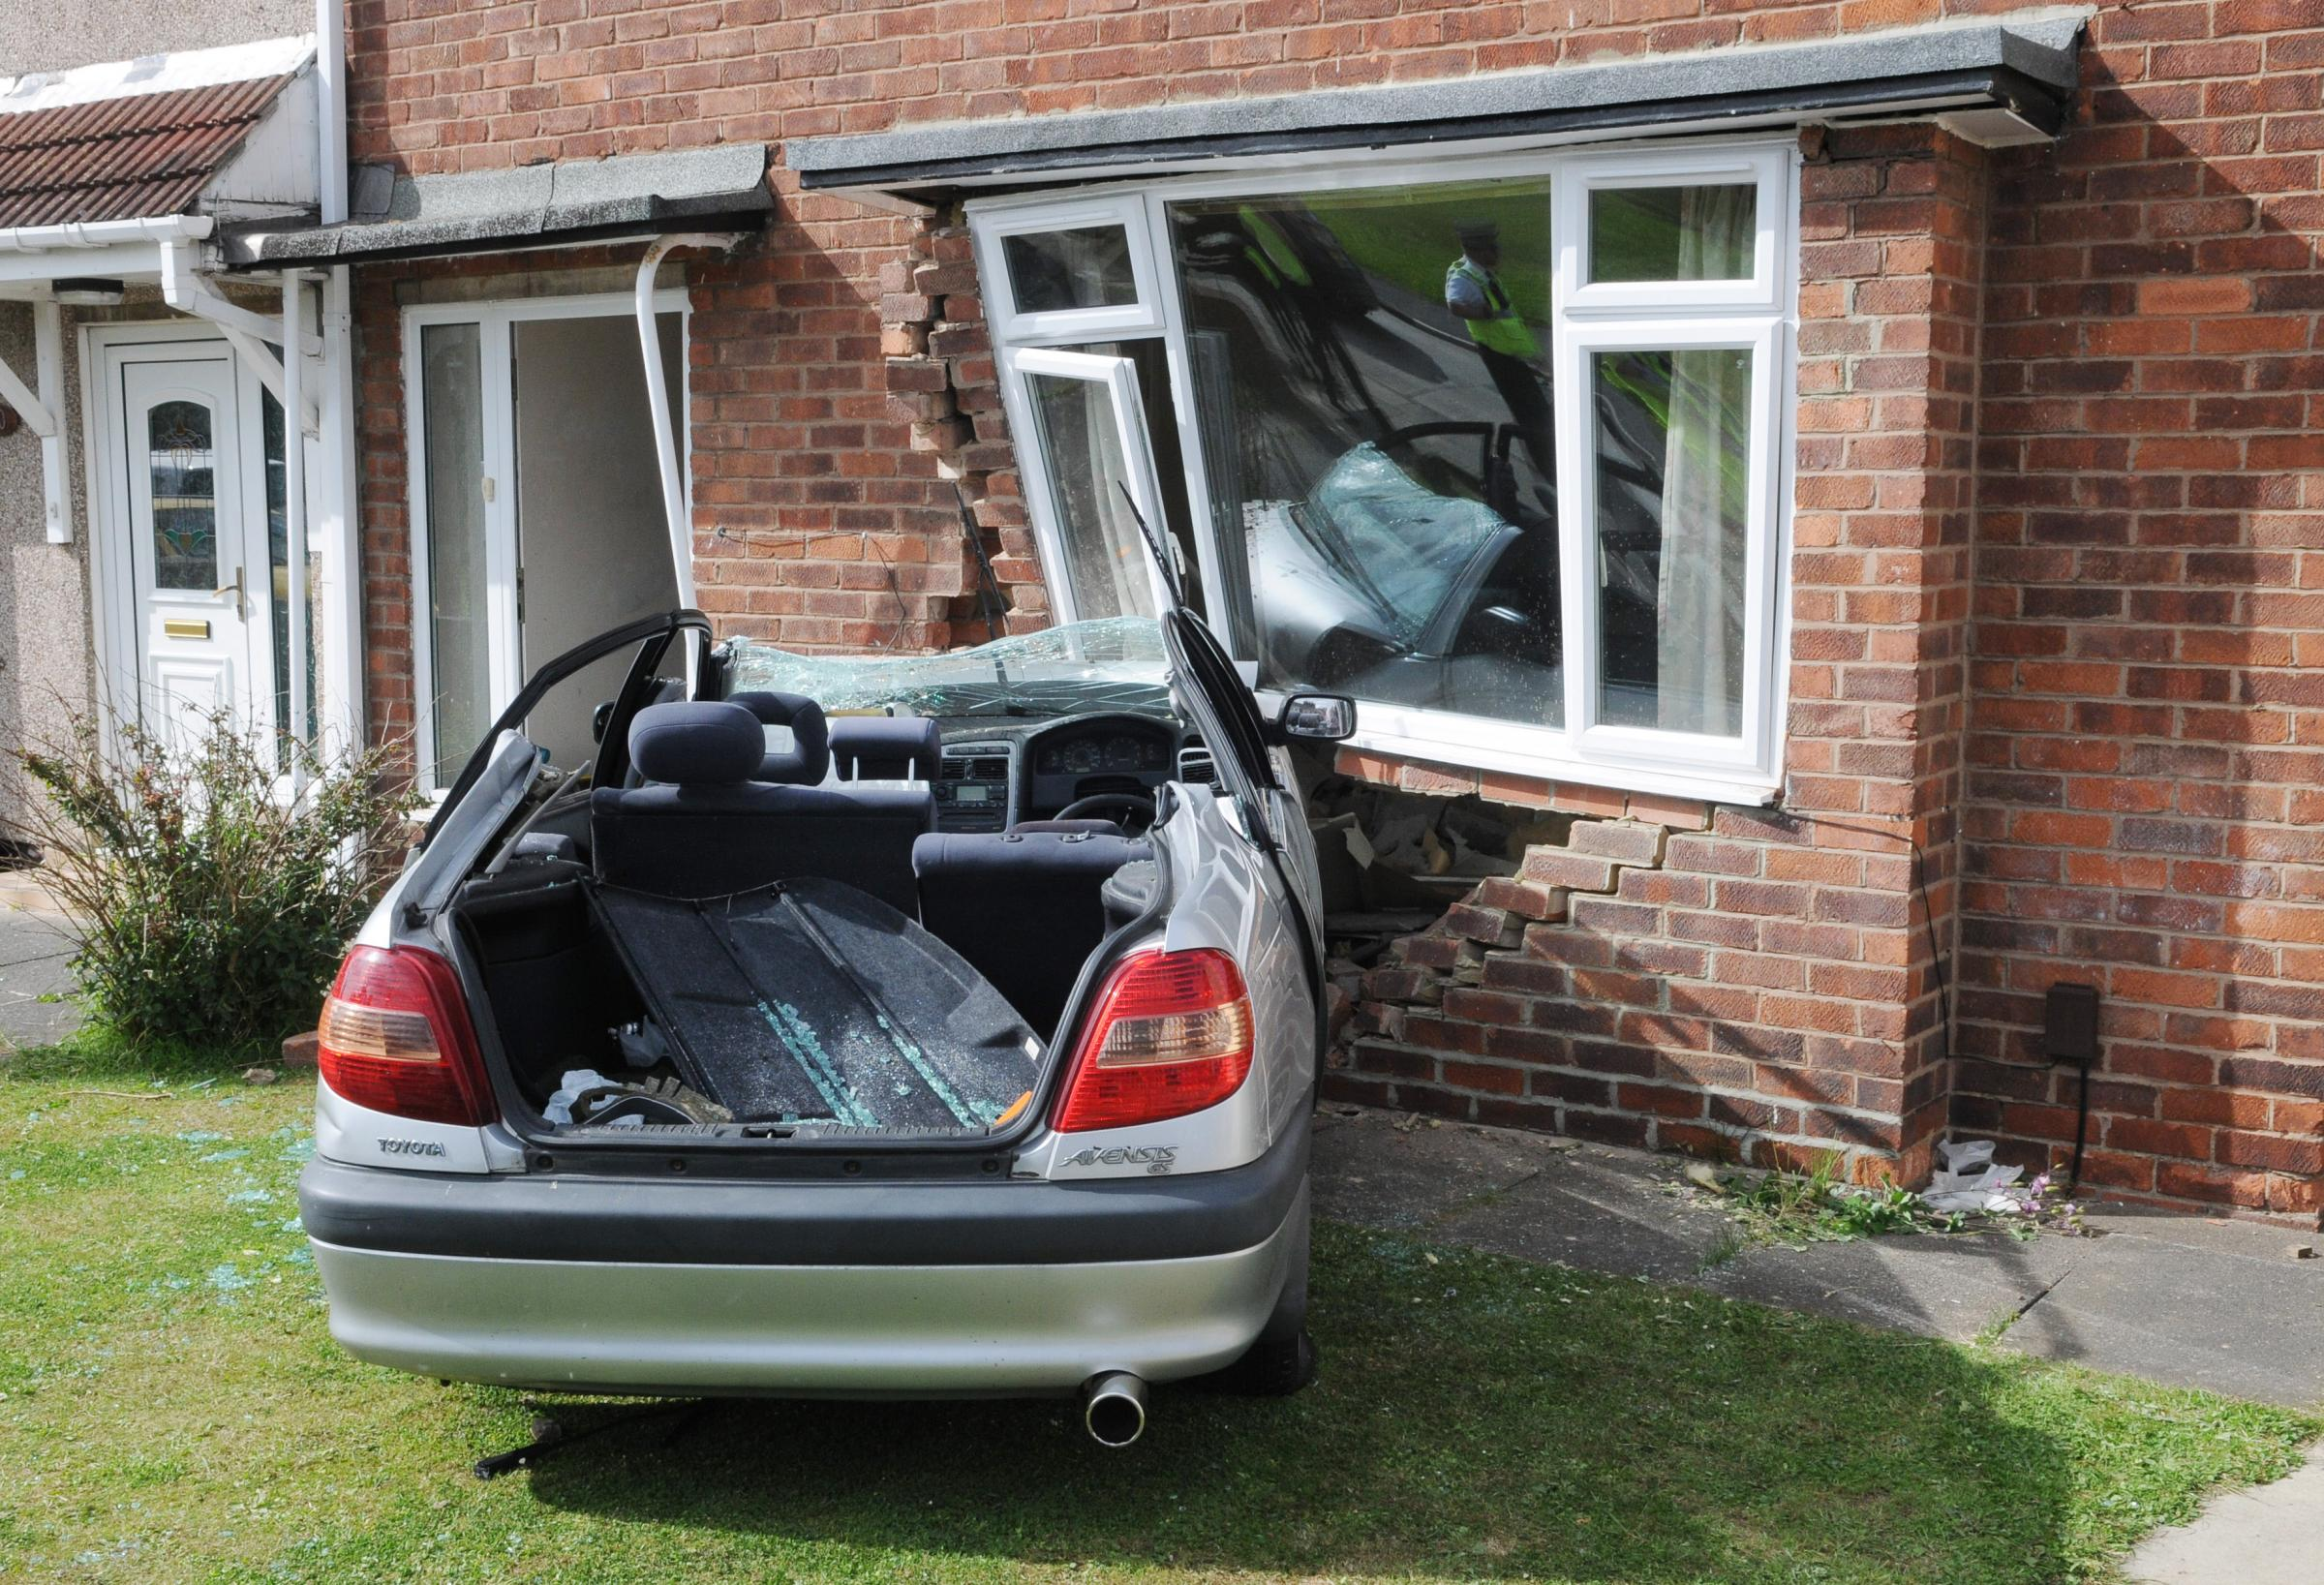 The car embedded in the house on Rostrevor Avenue